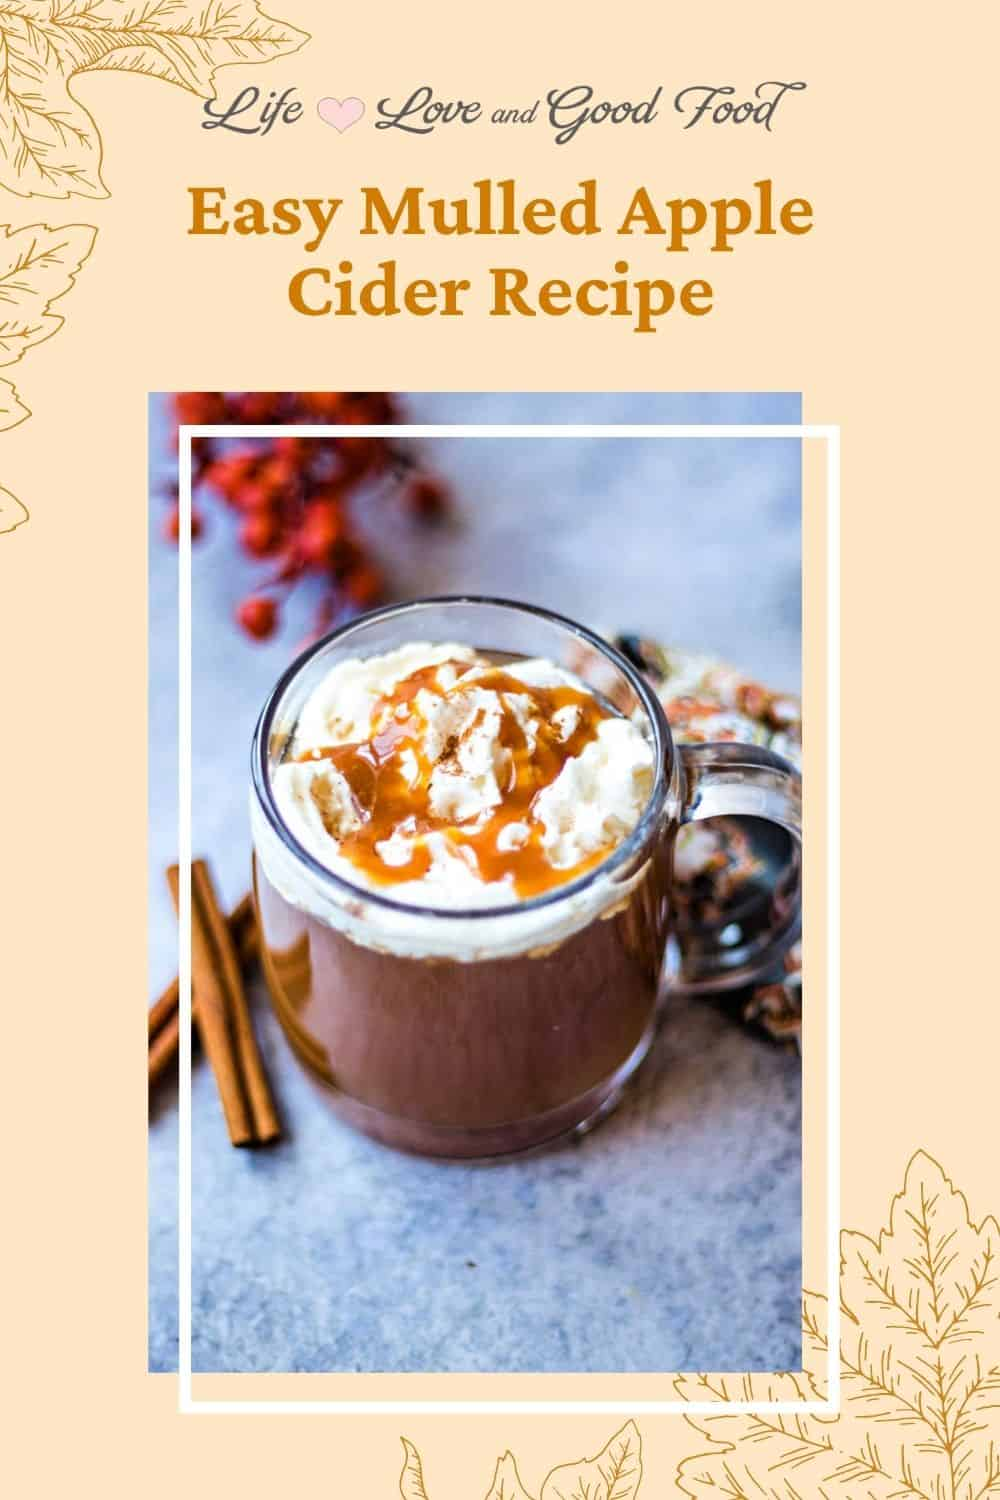 This easy Hot Apple Cider recipe makes a tasty non-alcoholic hot drink flavored with cinnamon, cloves, and allspice everyone can enjoy on chilly Autumn or Winter days. A warm mug of perfectly spiced and lightly sweetened apple cider is perfect for Halloween or harvest parties, Thanksgiving, Christmas, or any time you're in the mood for a apple-flavored treat. Make it a hot apple cider float with whipped cream and caramel syrup!